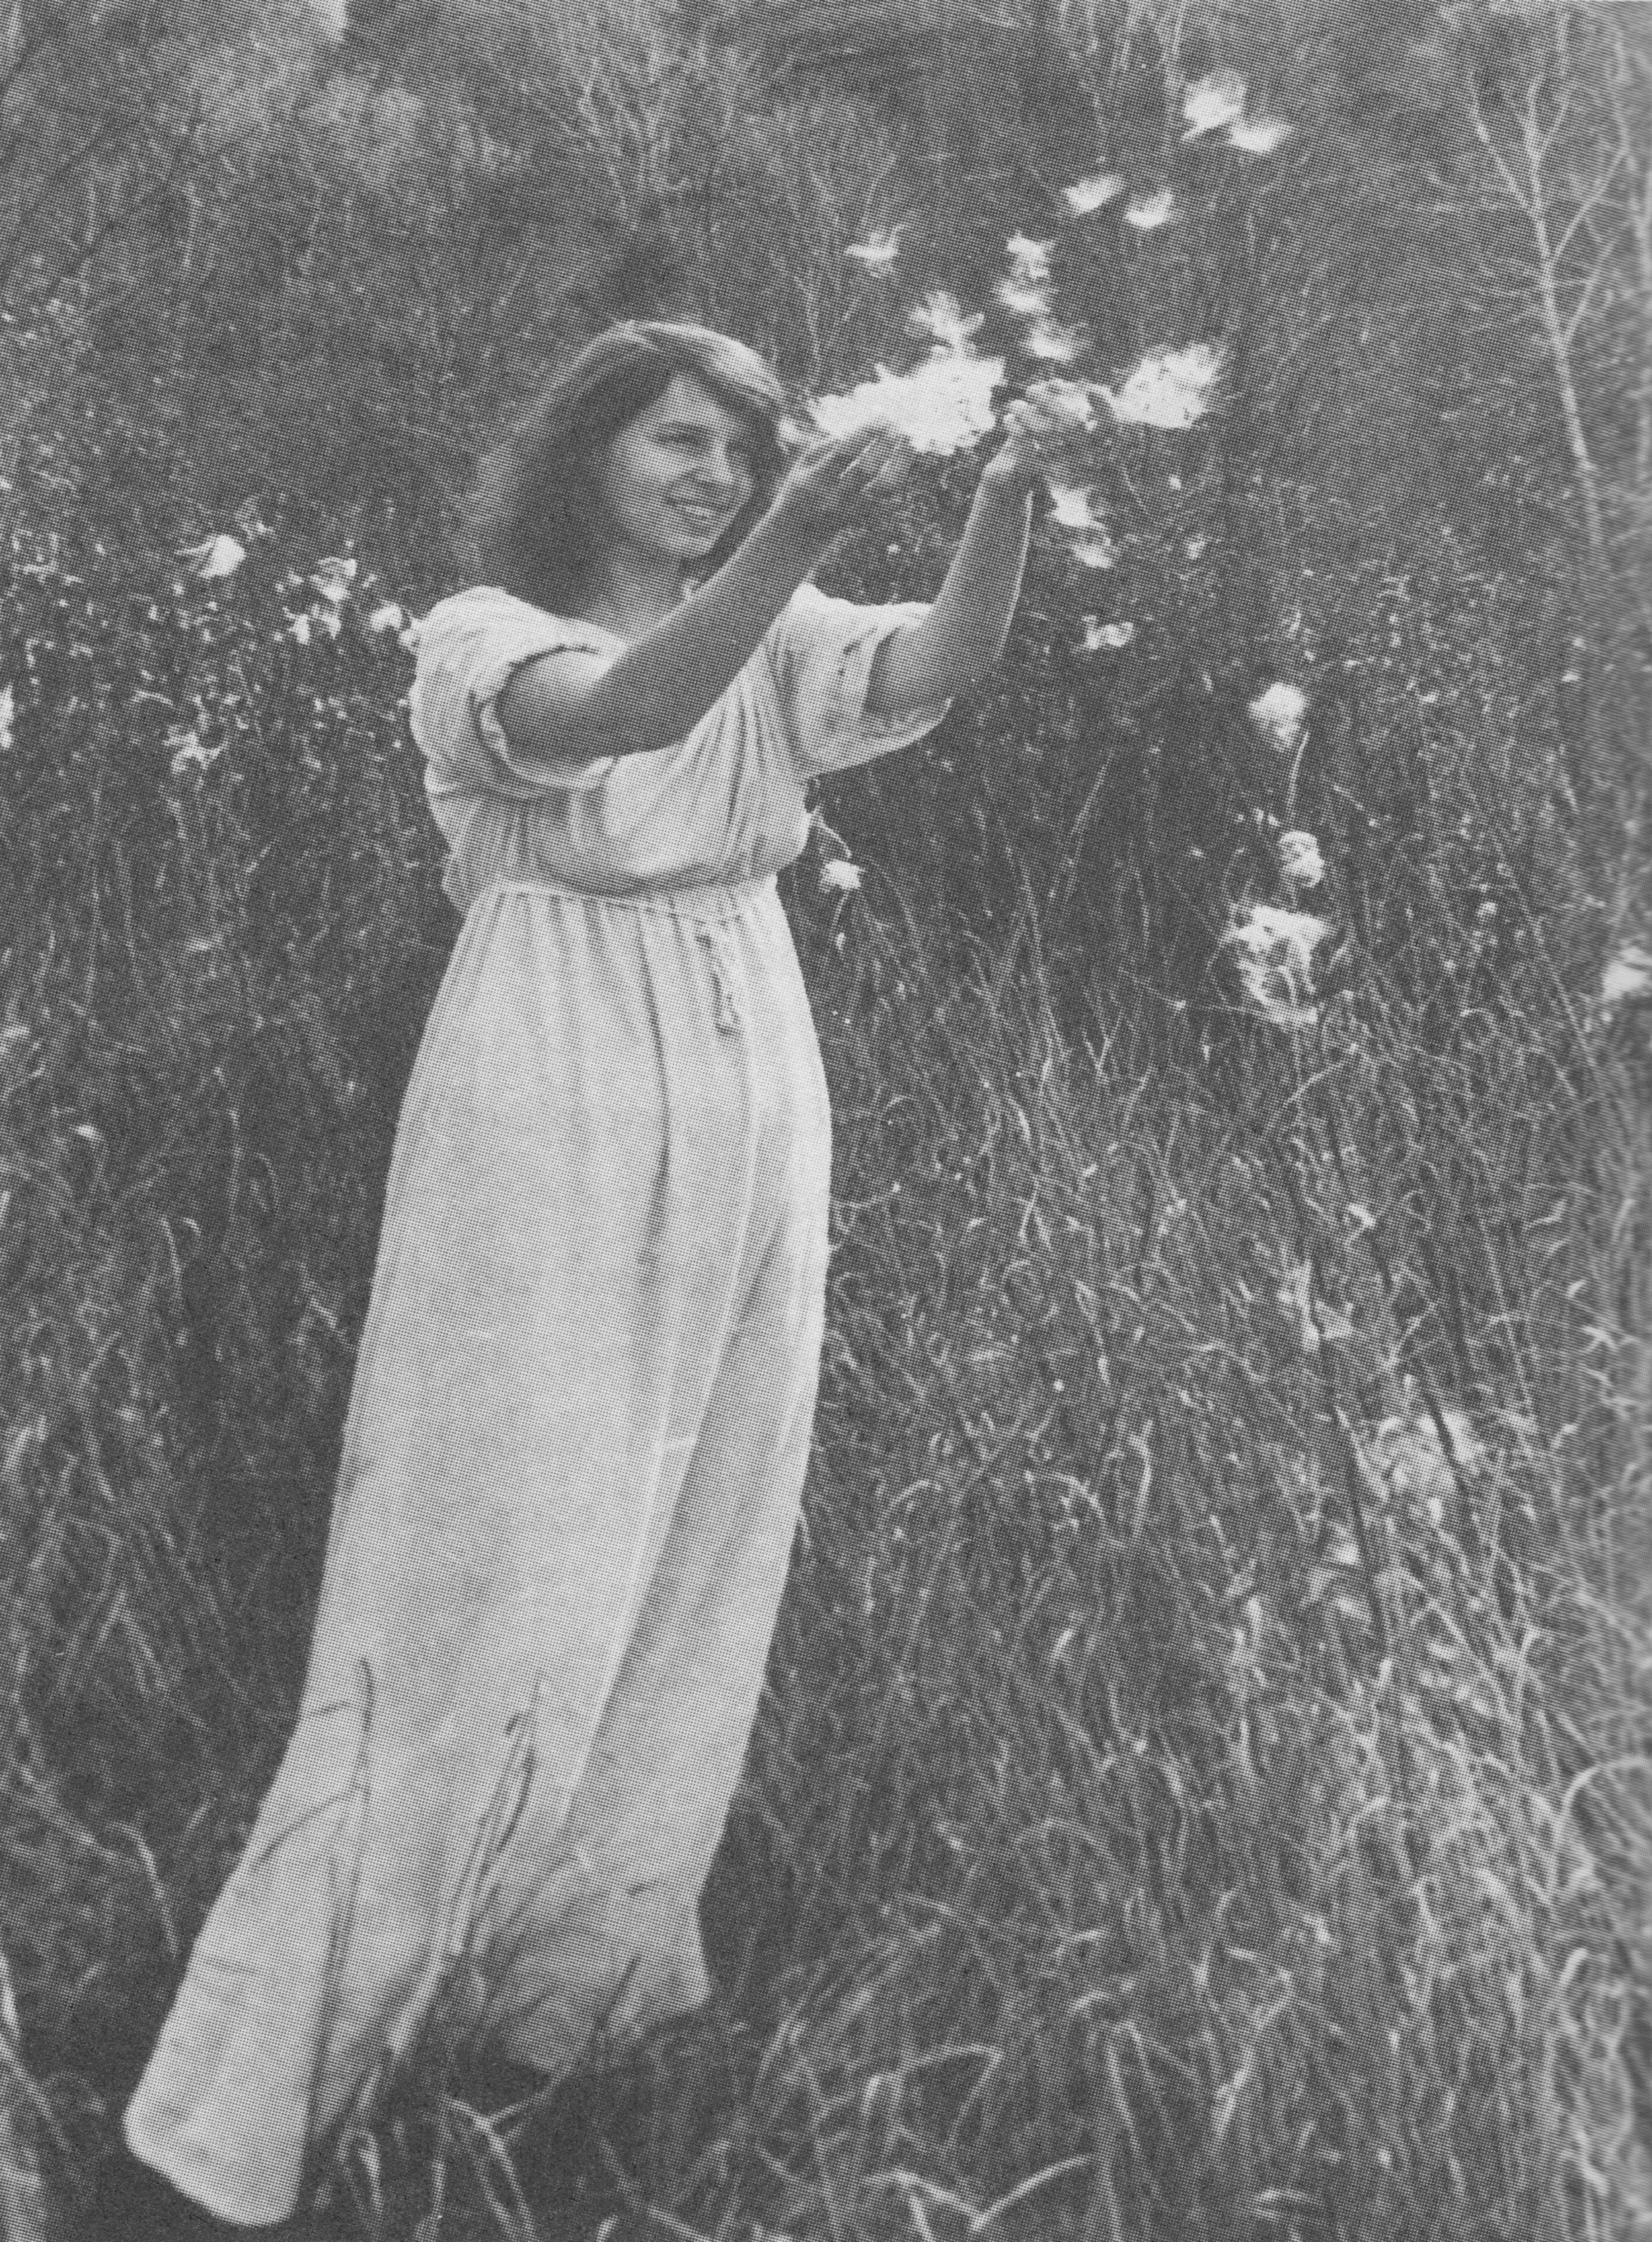 """Young Ladybelle Fiske - """"Born like a dreamin this dream of a world,How easy in mind I am,I who will fade awaylike the morning dew.""""- Zen Poem"""